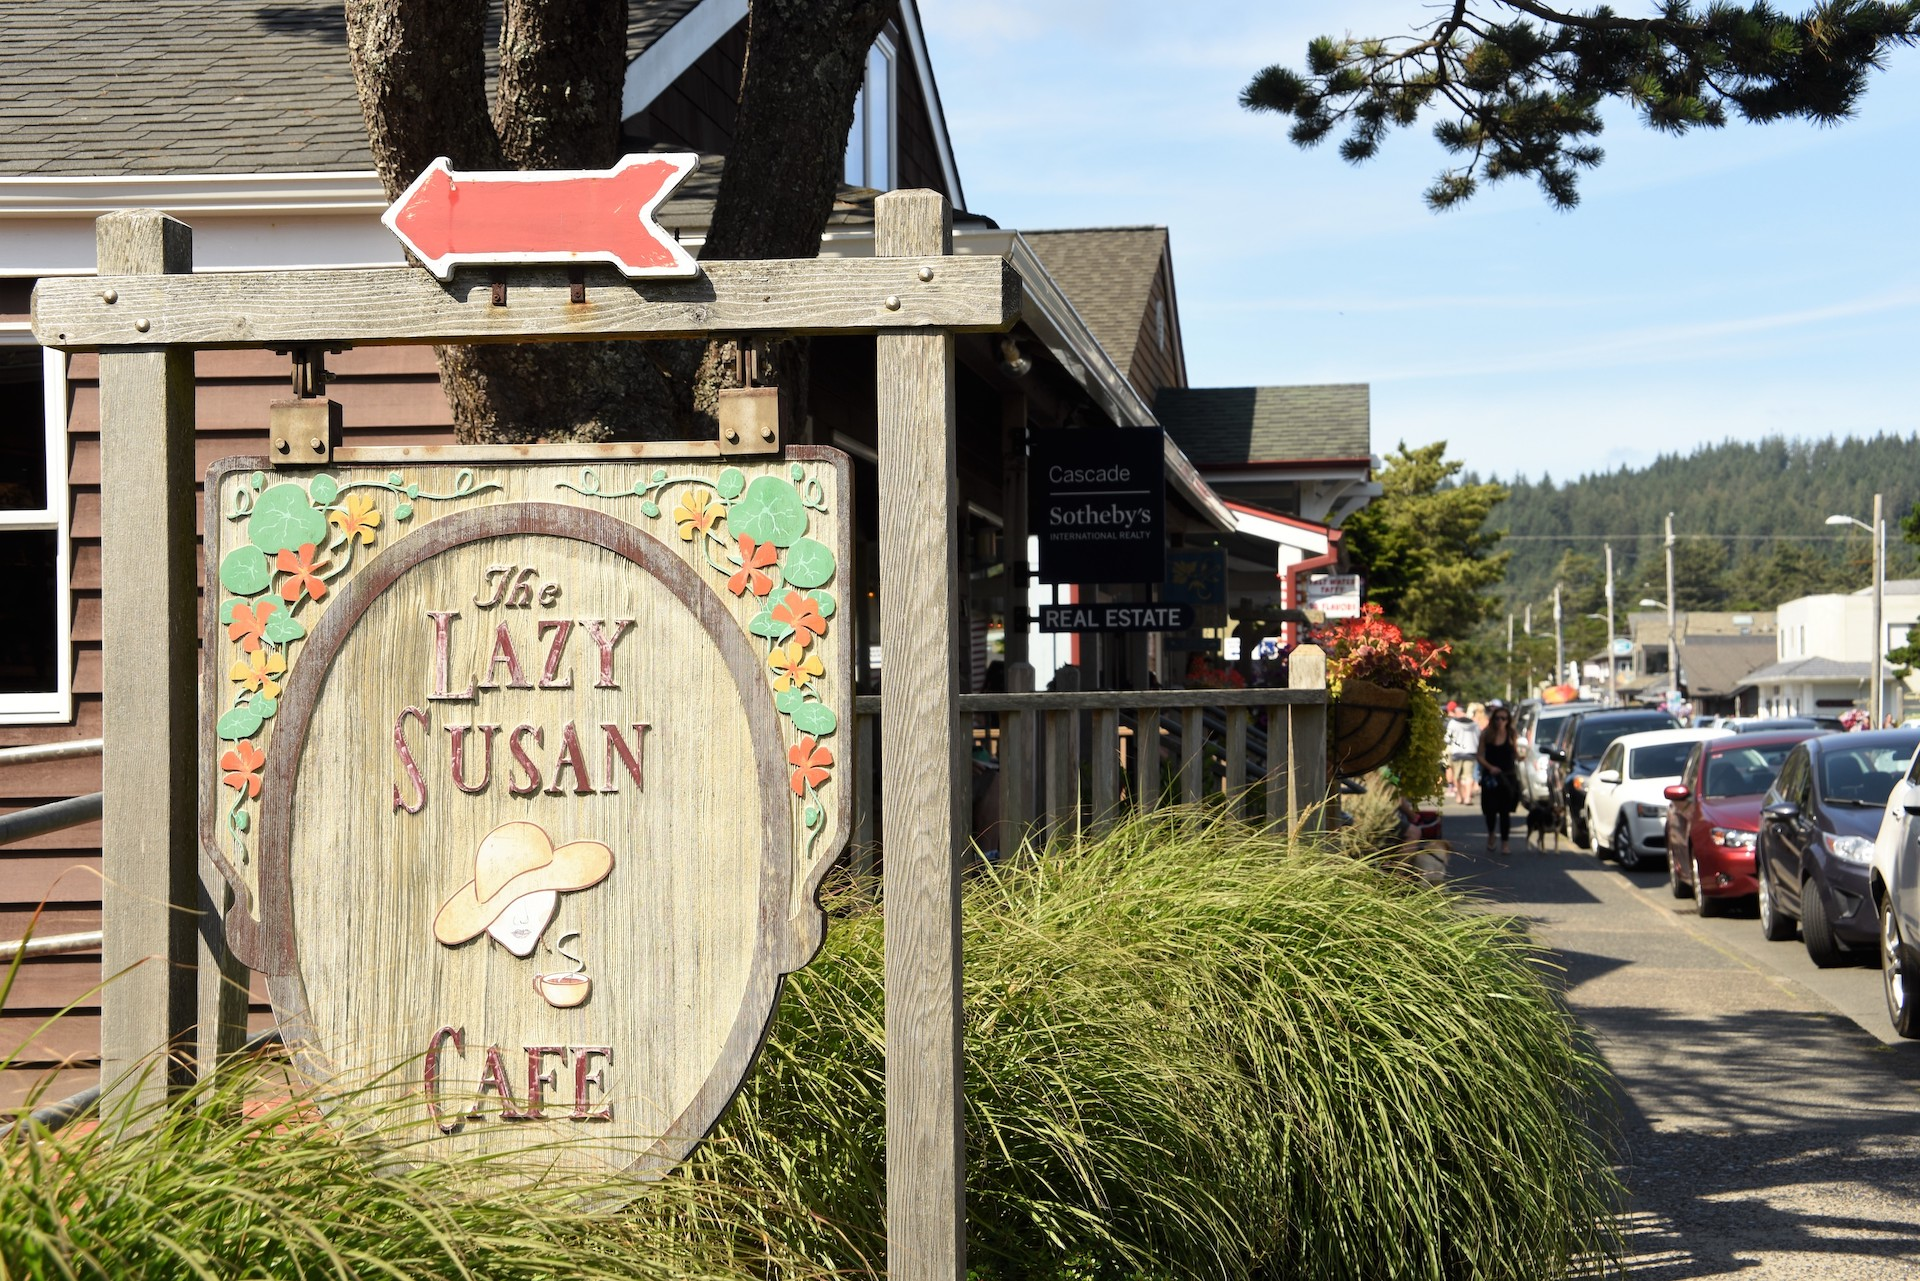 exterior of little wooden cafe in Cannon Beach small towns in America